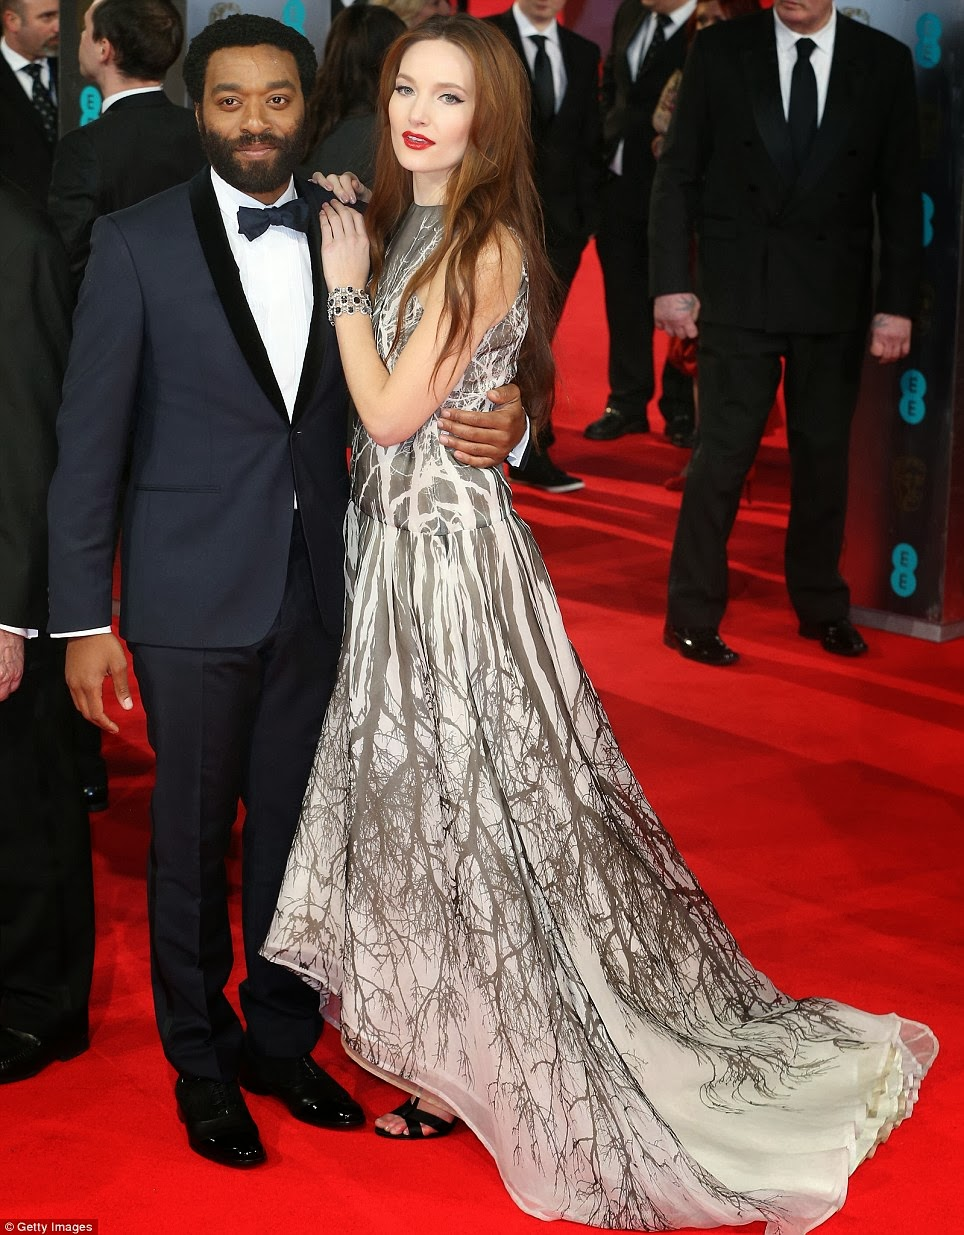 Baftas 2014: the most memorable red carpet dresses in pictures Baftas 2014 red carpet photos